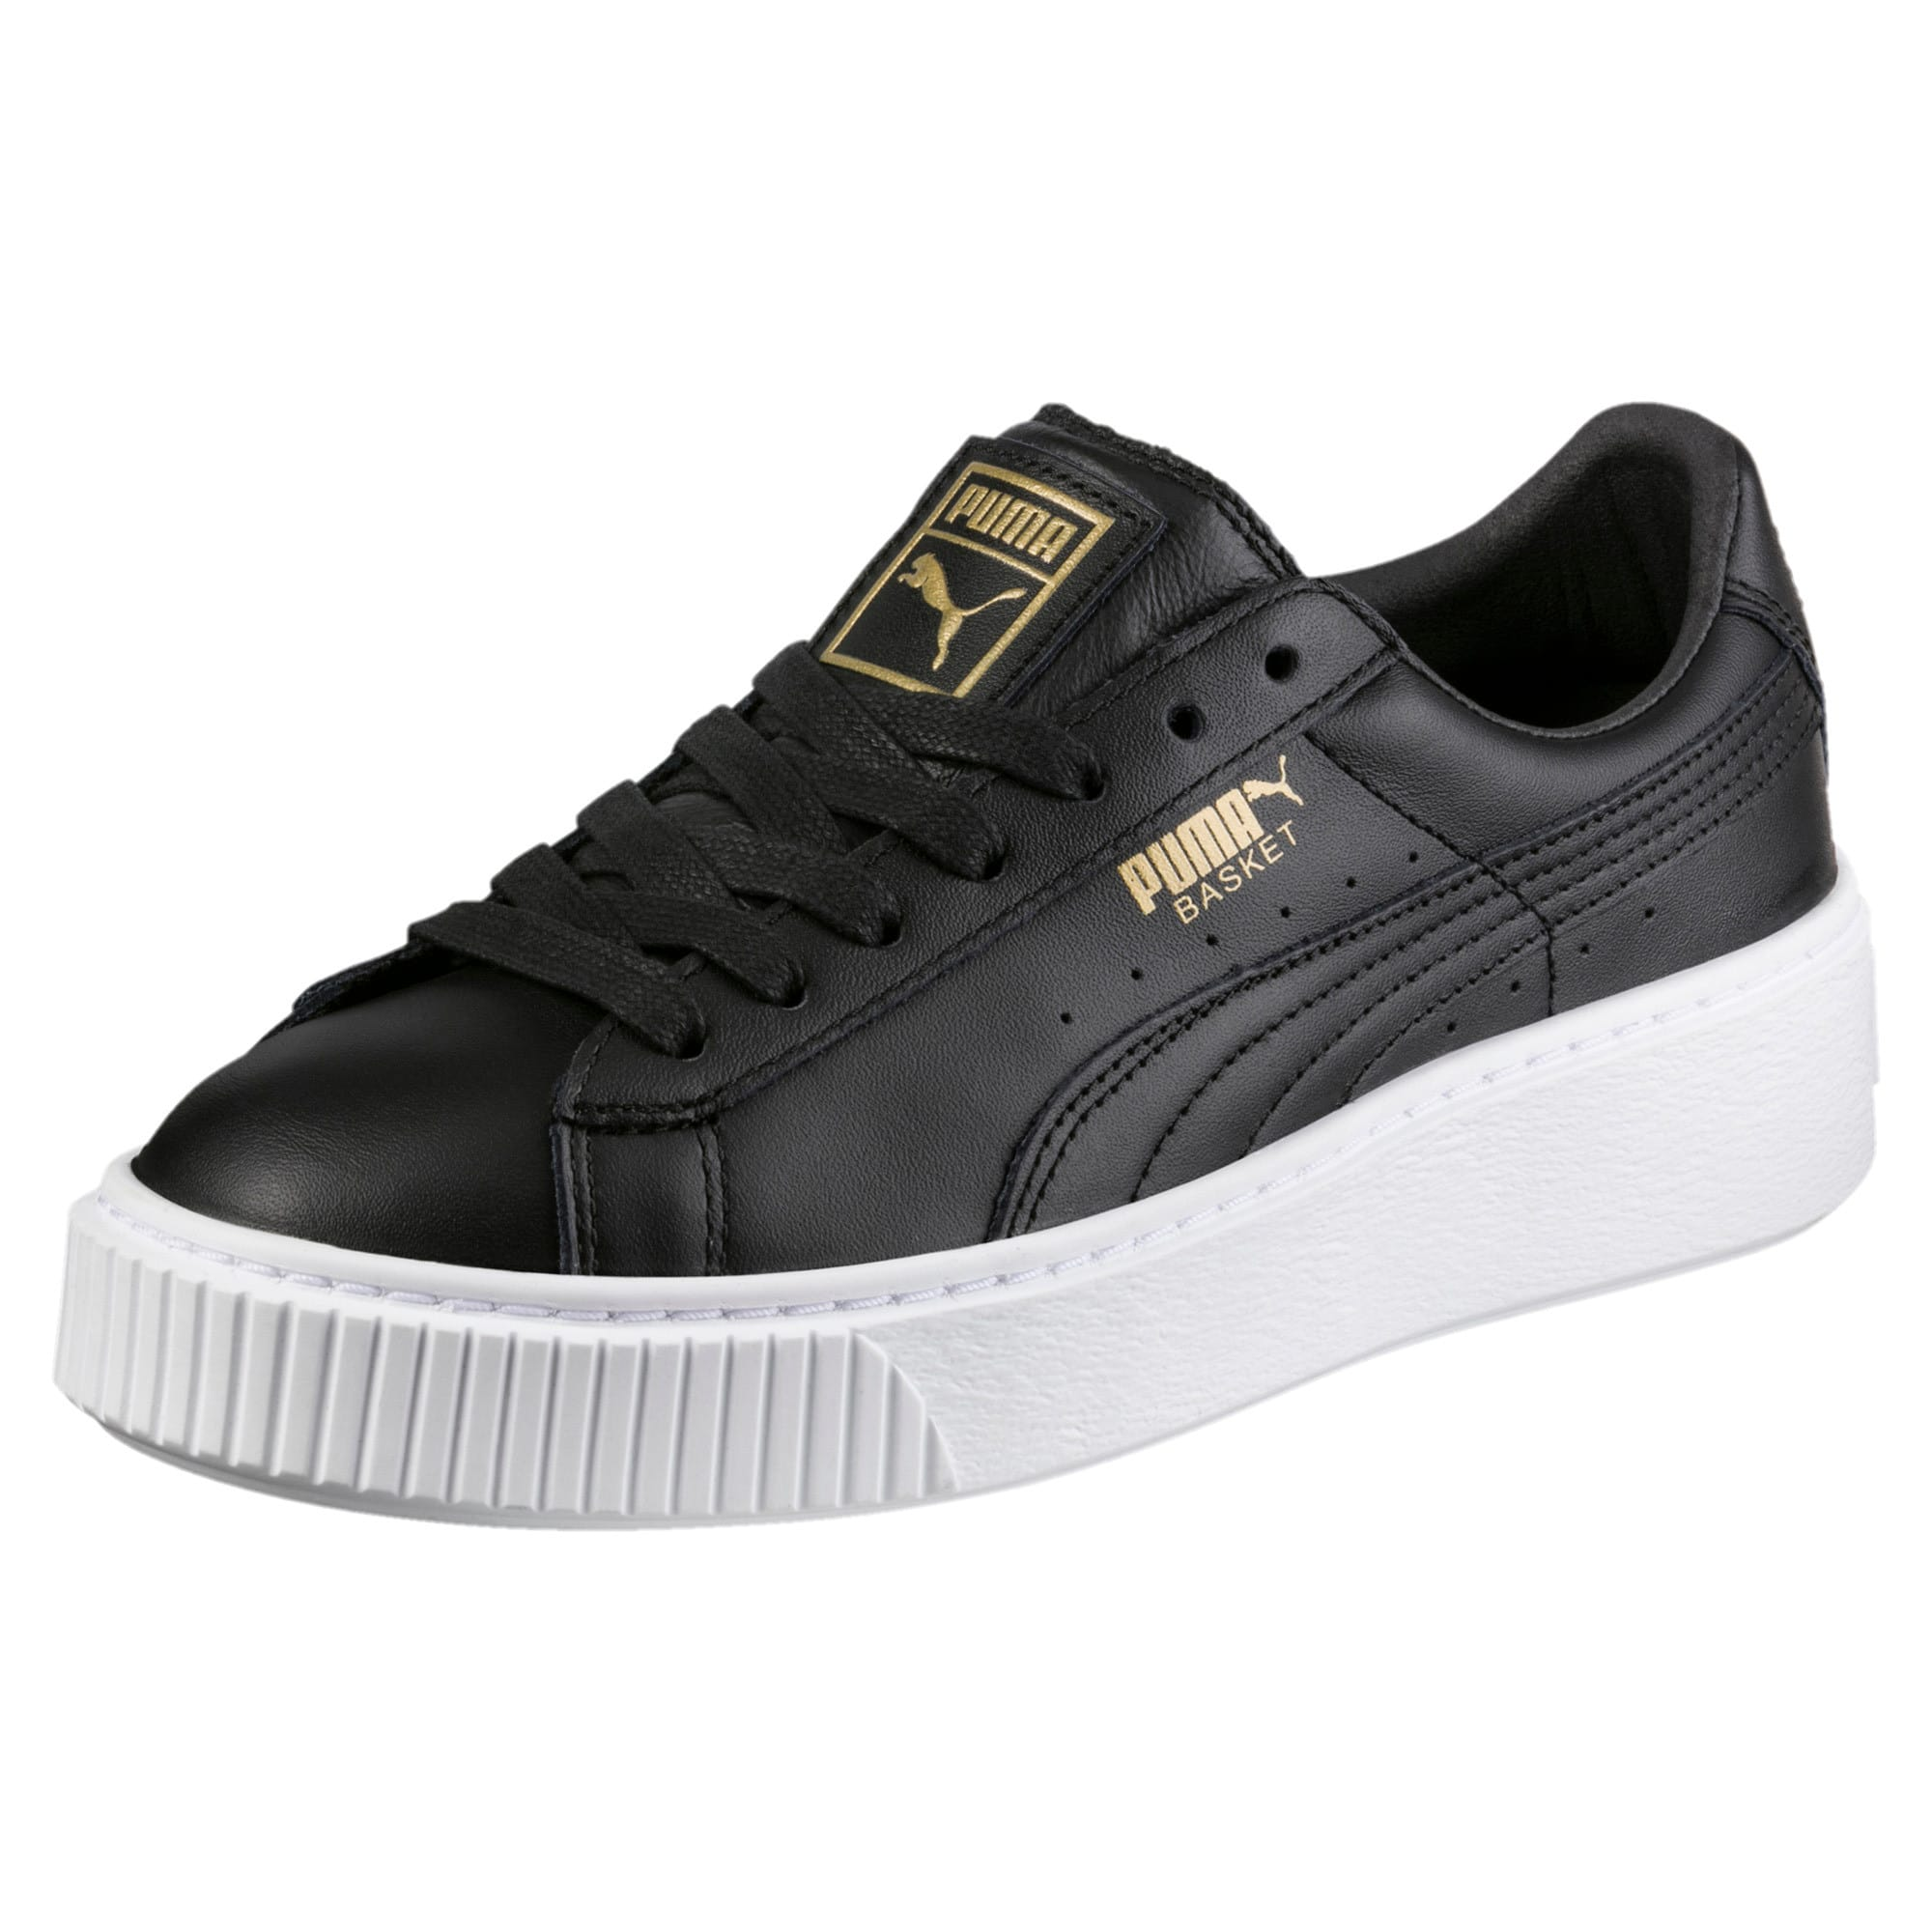 Thumbnail 1 of Basket Platform Core Women's Trainers, Puma Black-Gold, medium